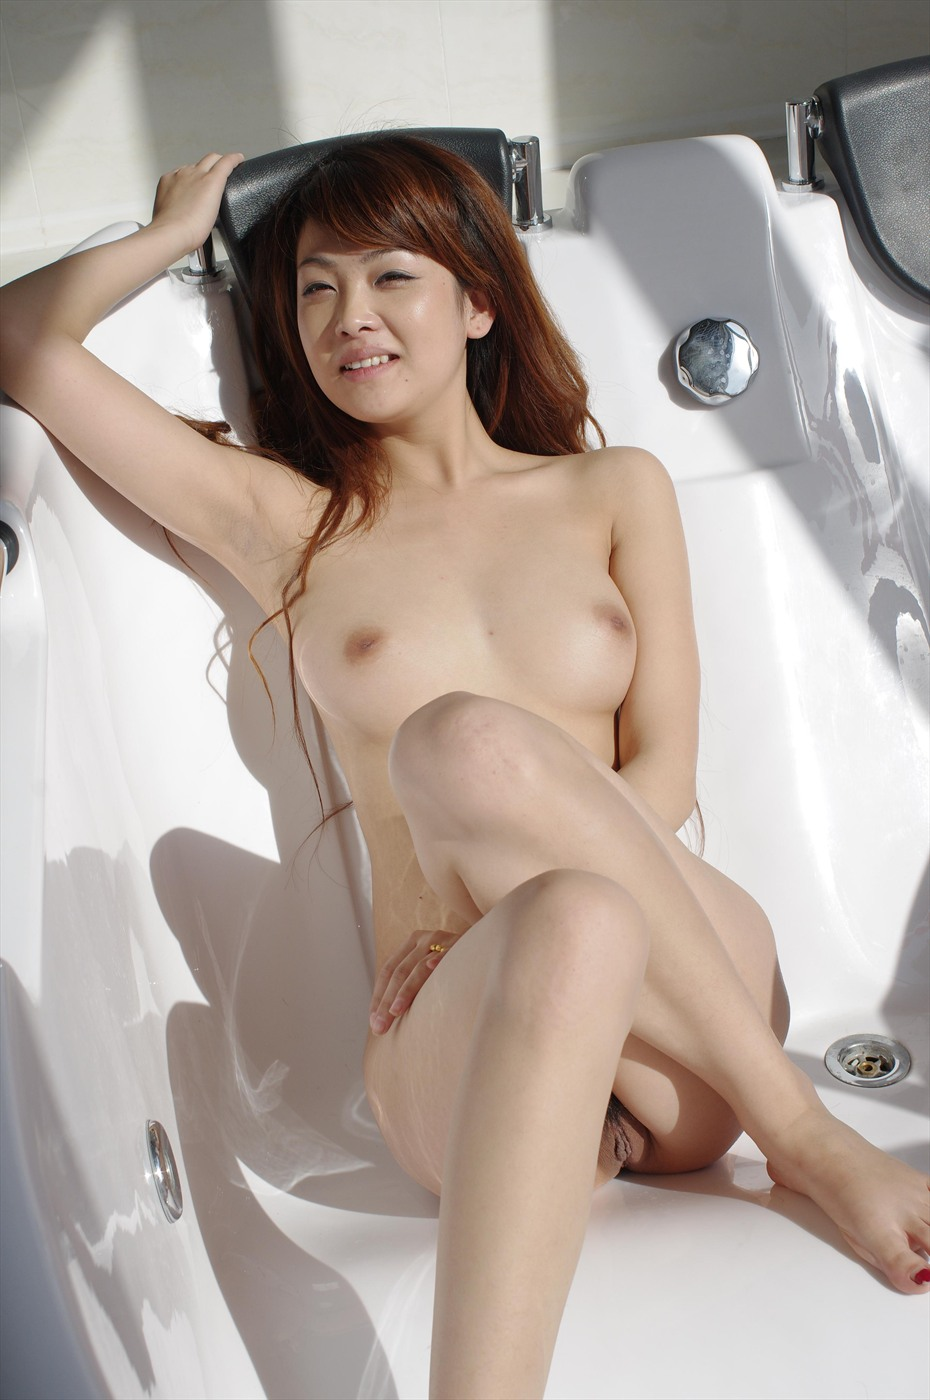 Amateur korean model sex for hire 4